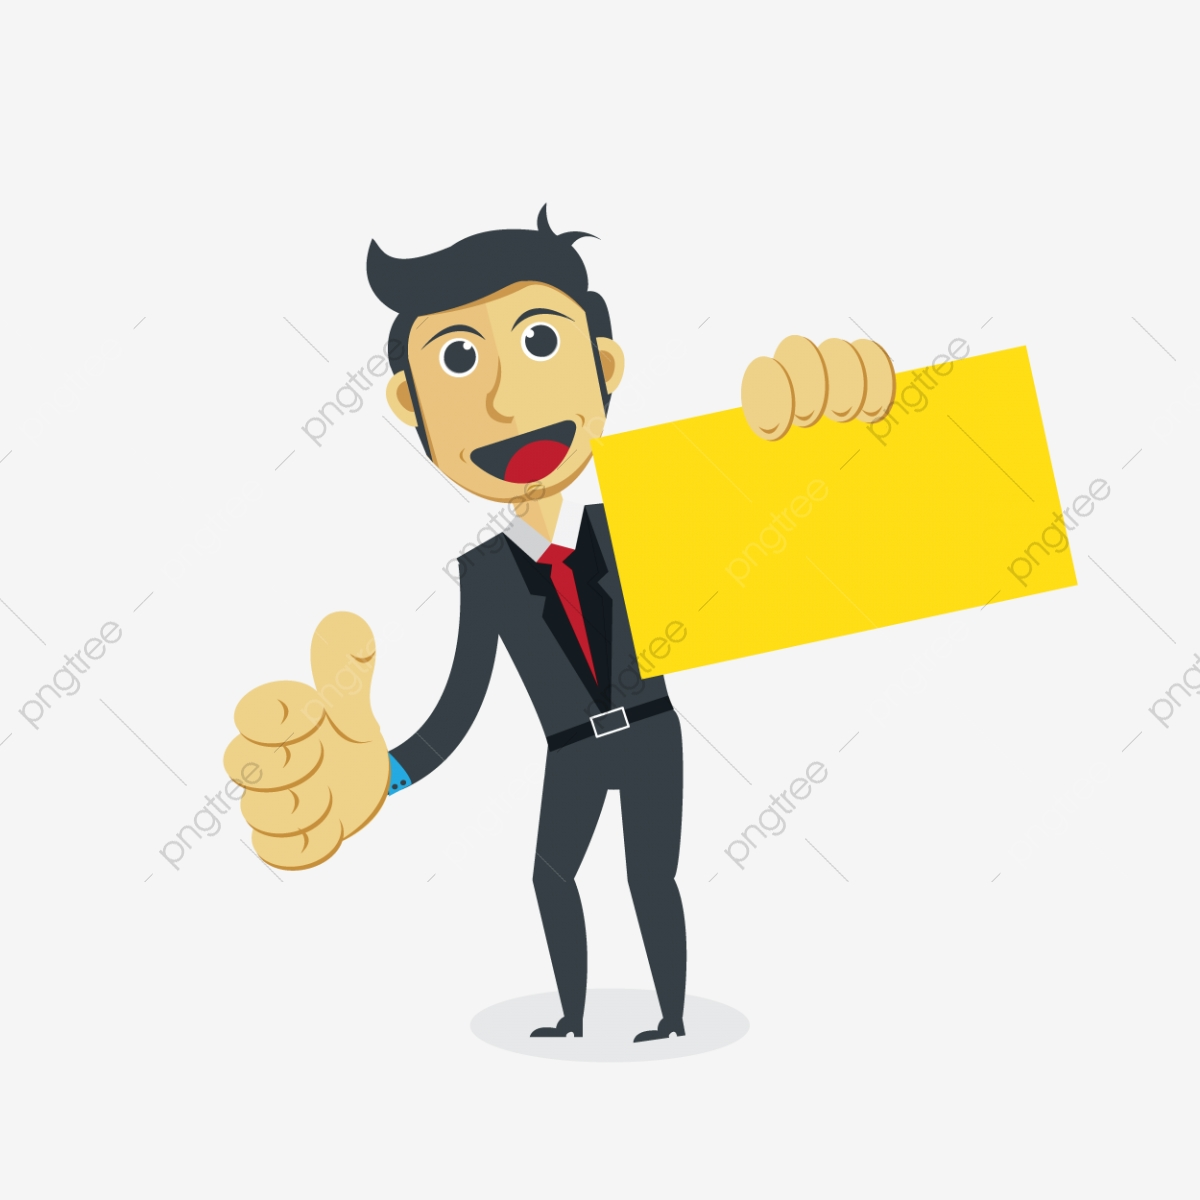 cartoon character png vector psd and clipart with transparent background for free download pngtree https pngtree com freepng businessman cartoon character 3713087 html